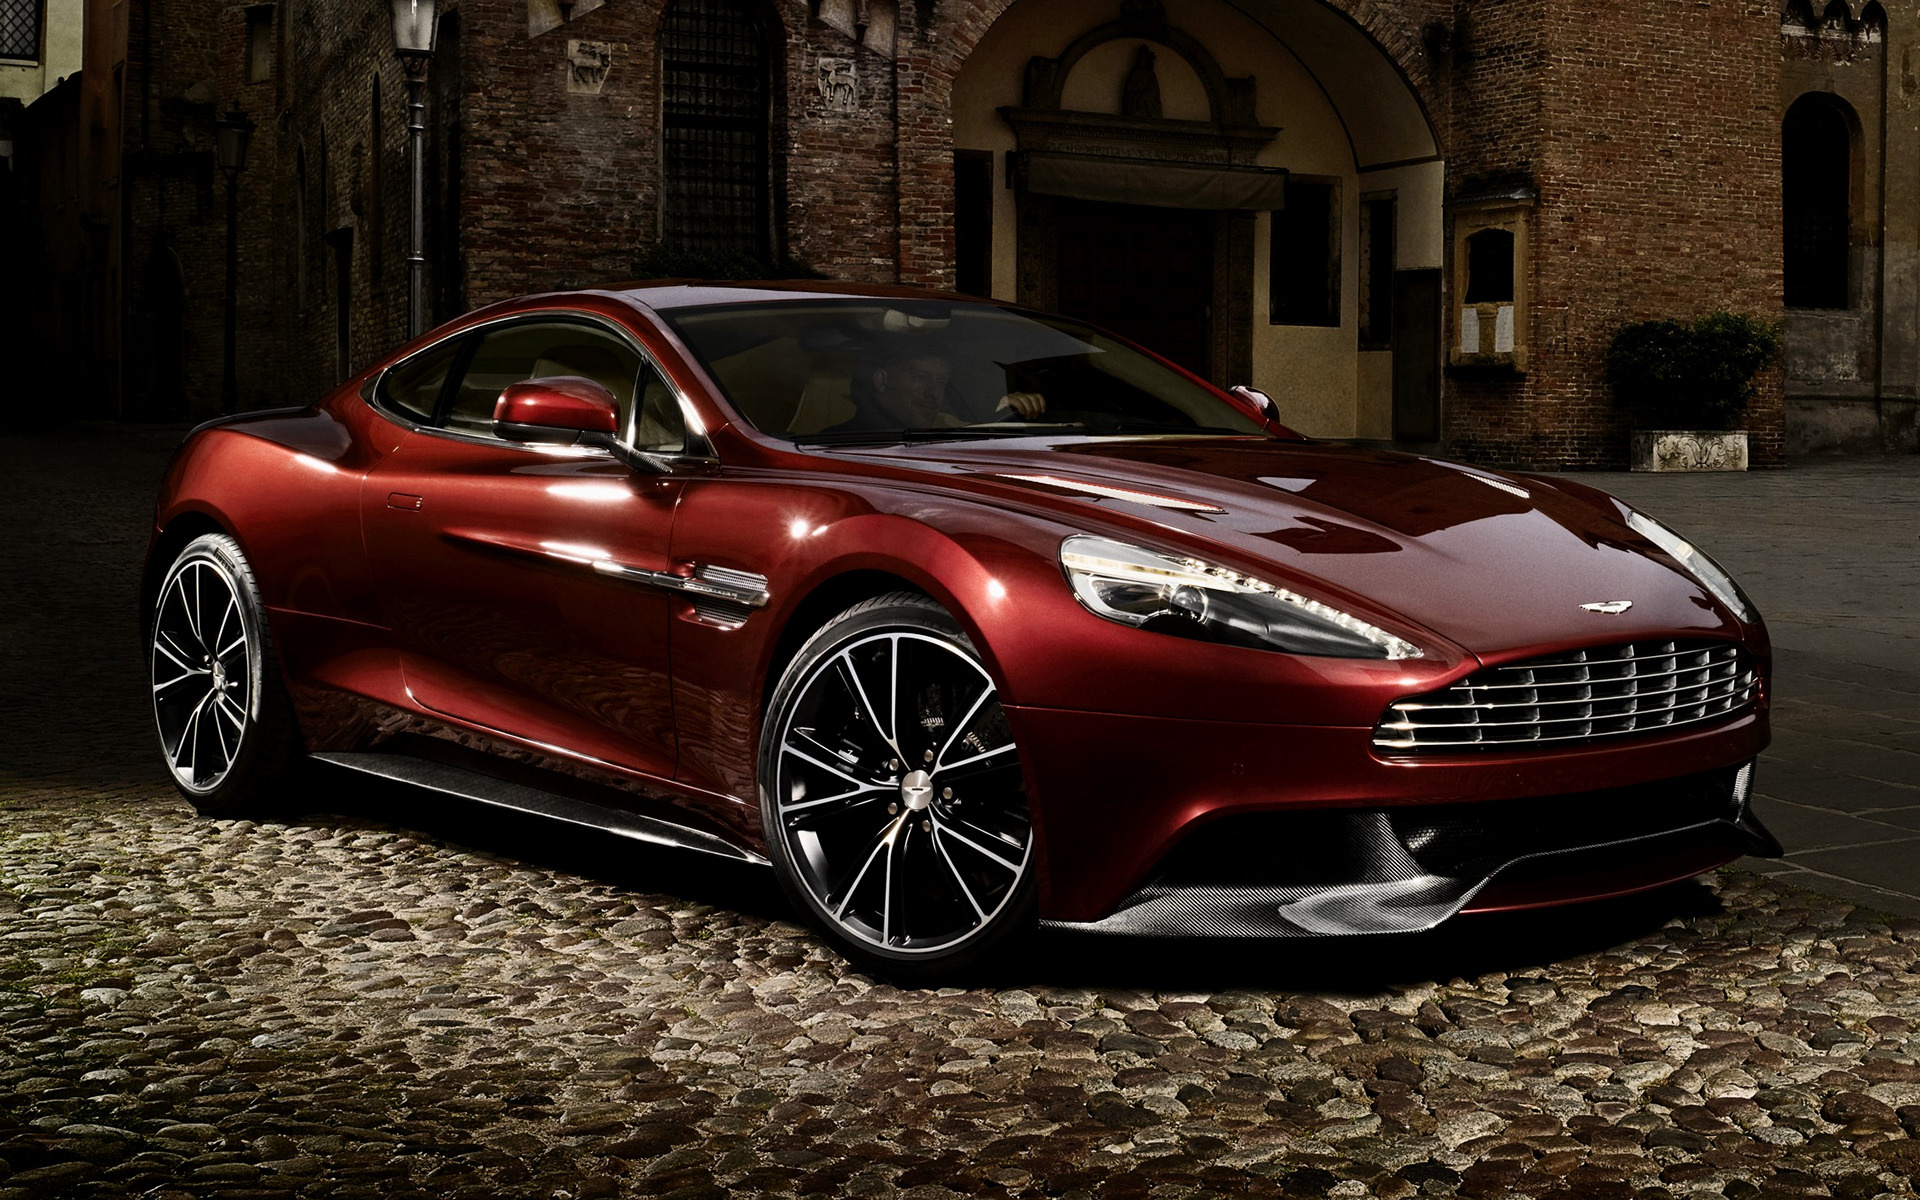 Aston Martin Vanquish Wallpaper Image Group 47 1920x1200